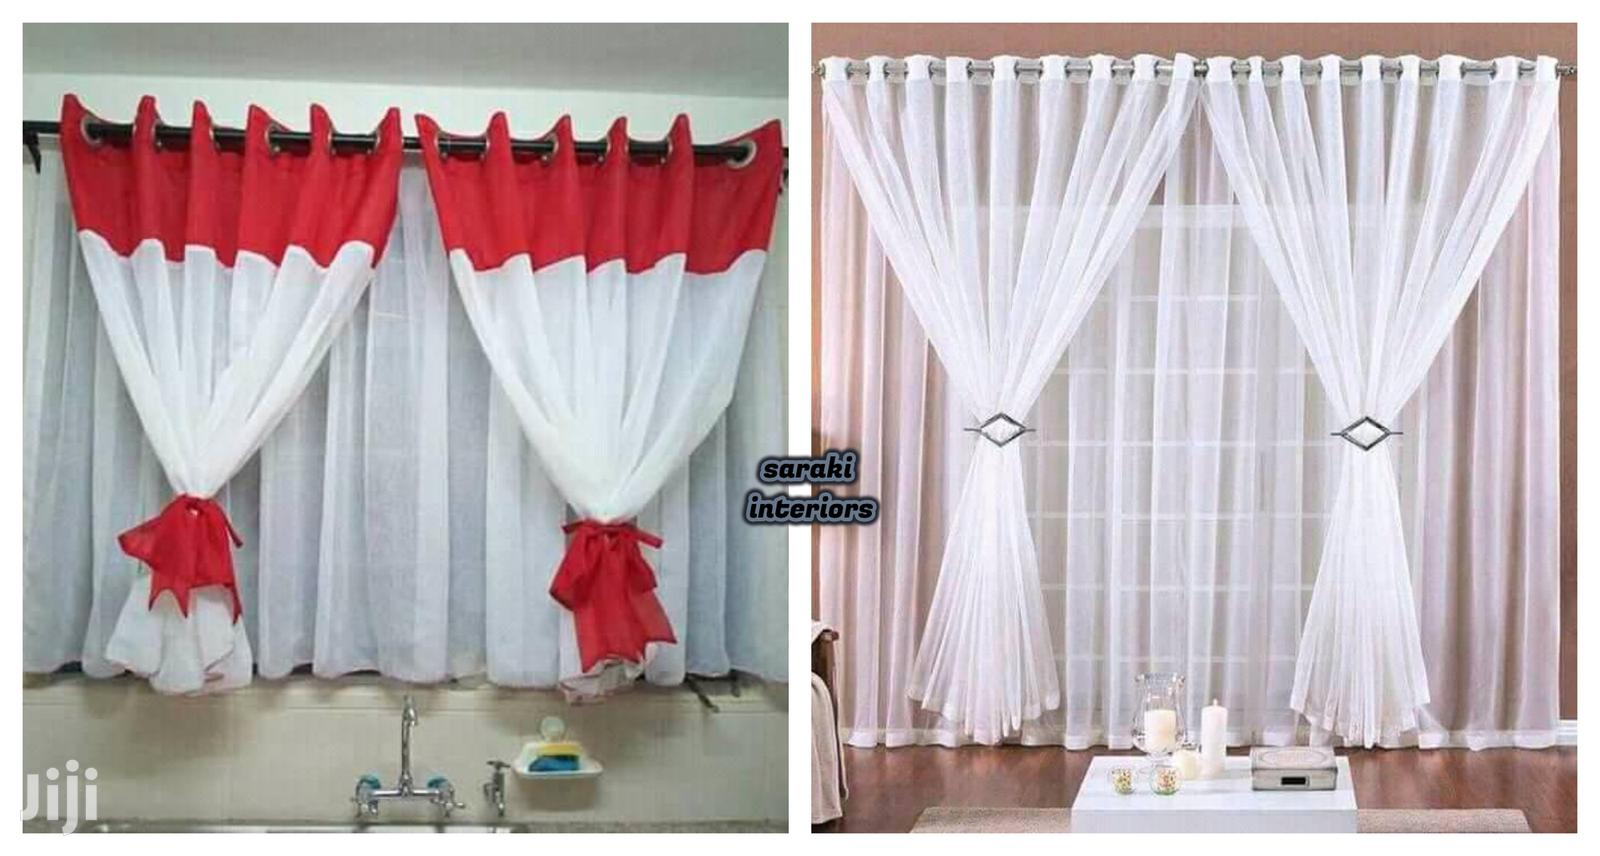 Quality Kitchen Curtains In Nairobi Central Home Accessories Saraki Interiors Jiji Co Ke For Sale In Nairobi Central Buy Home Accessories From Saraki Interiors On Jiji Co Ke